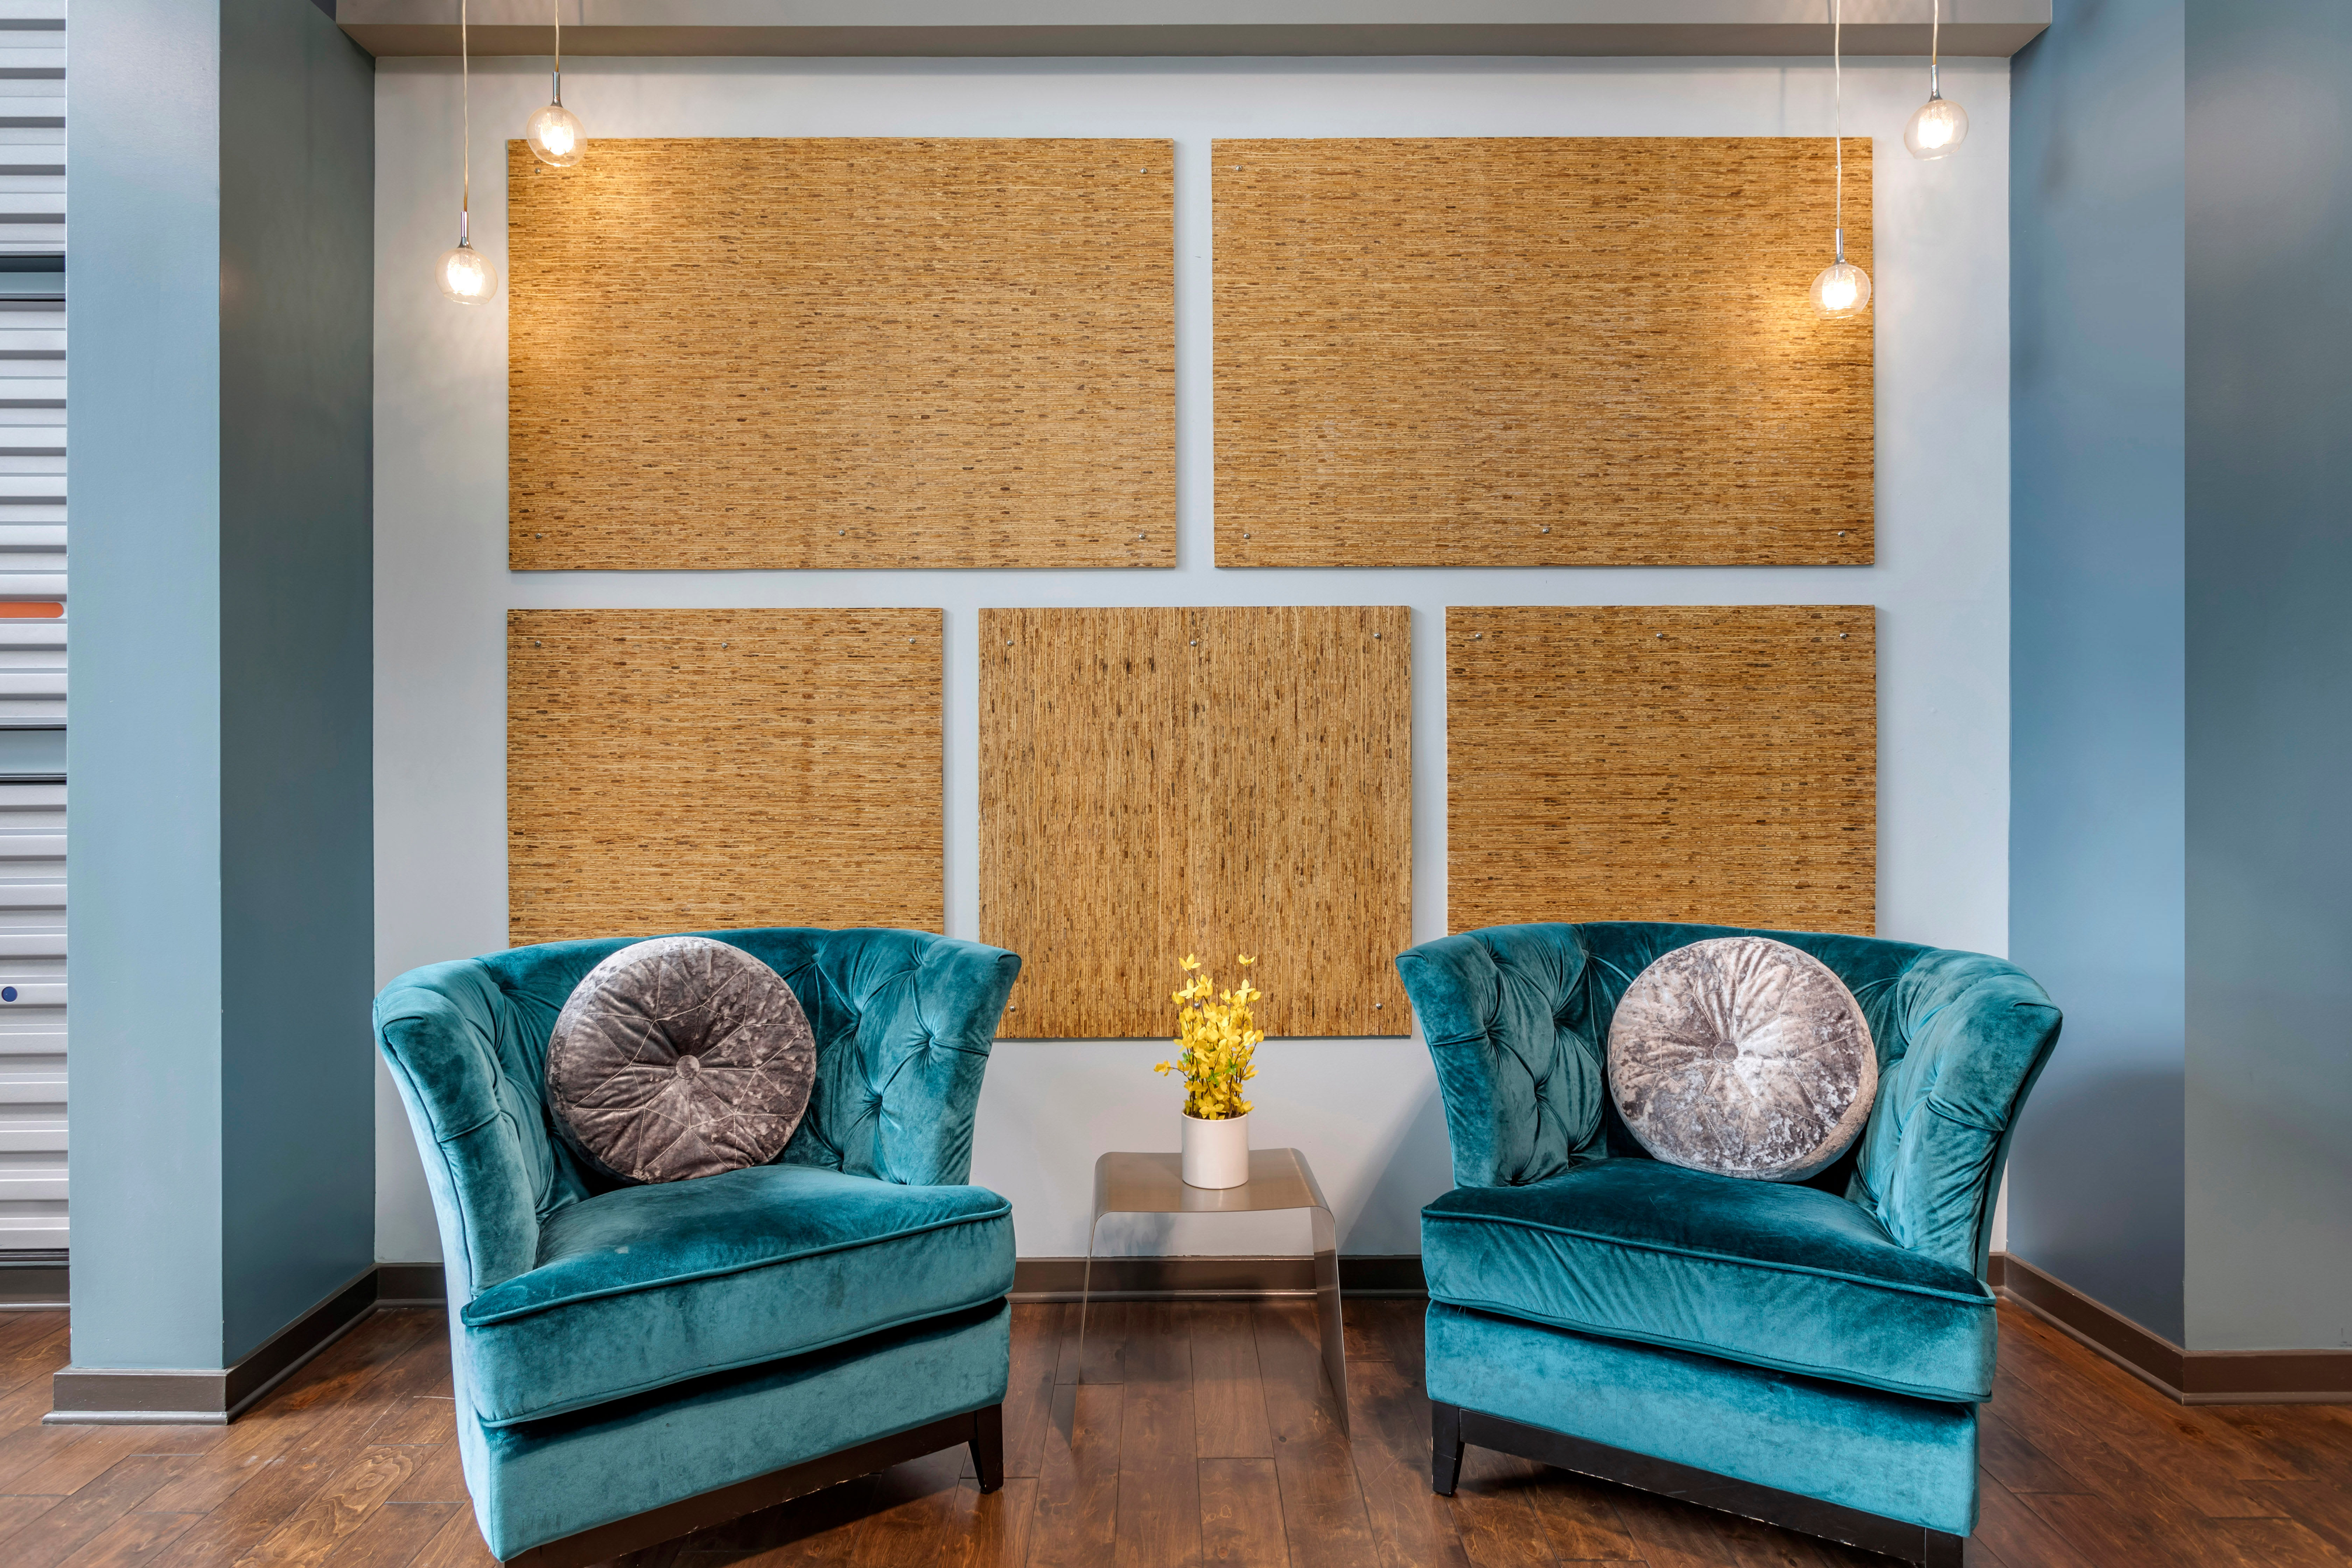 Comfortable places to sit at Olympus Midtown in Nashville, Tennessee